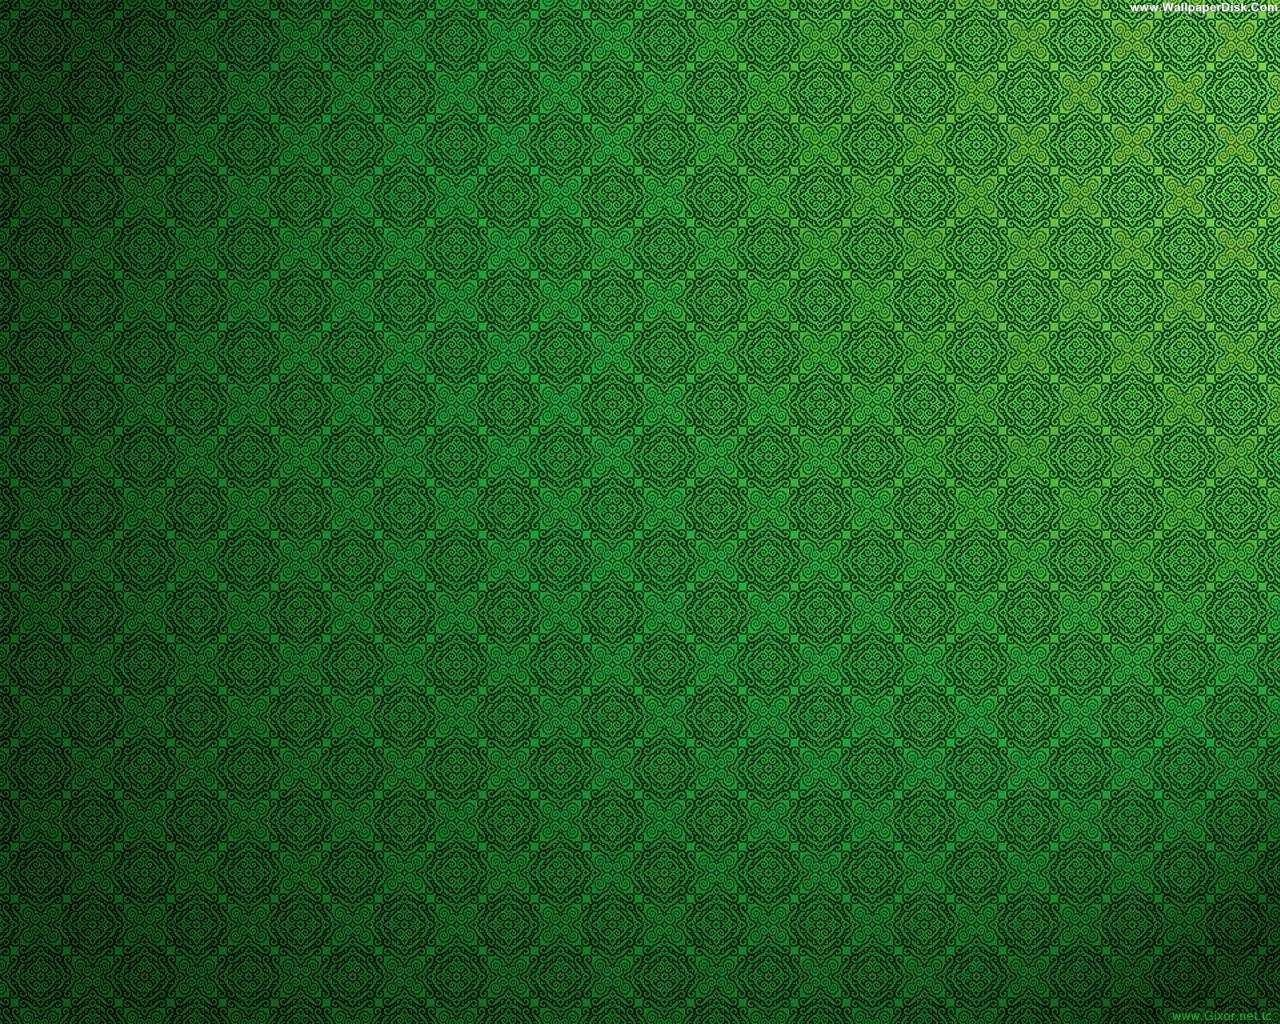 Green Islamic Art Islamic Background Hd